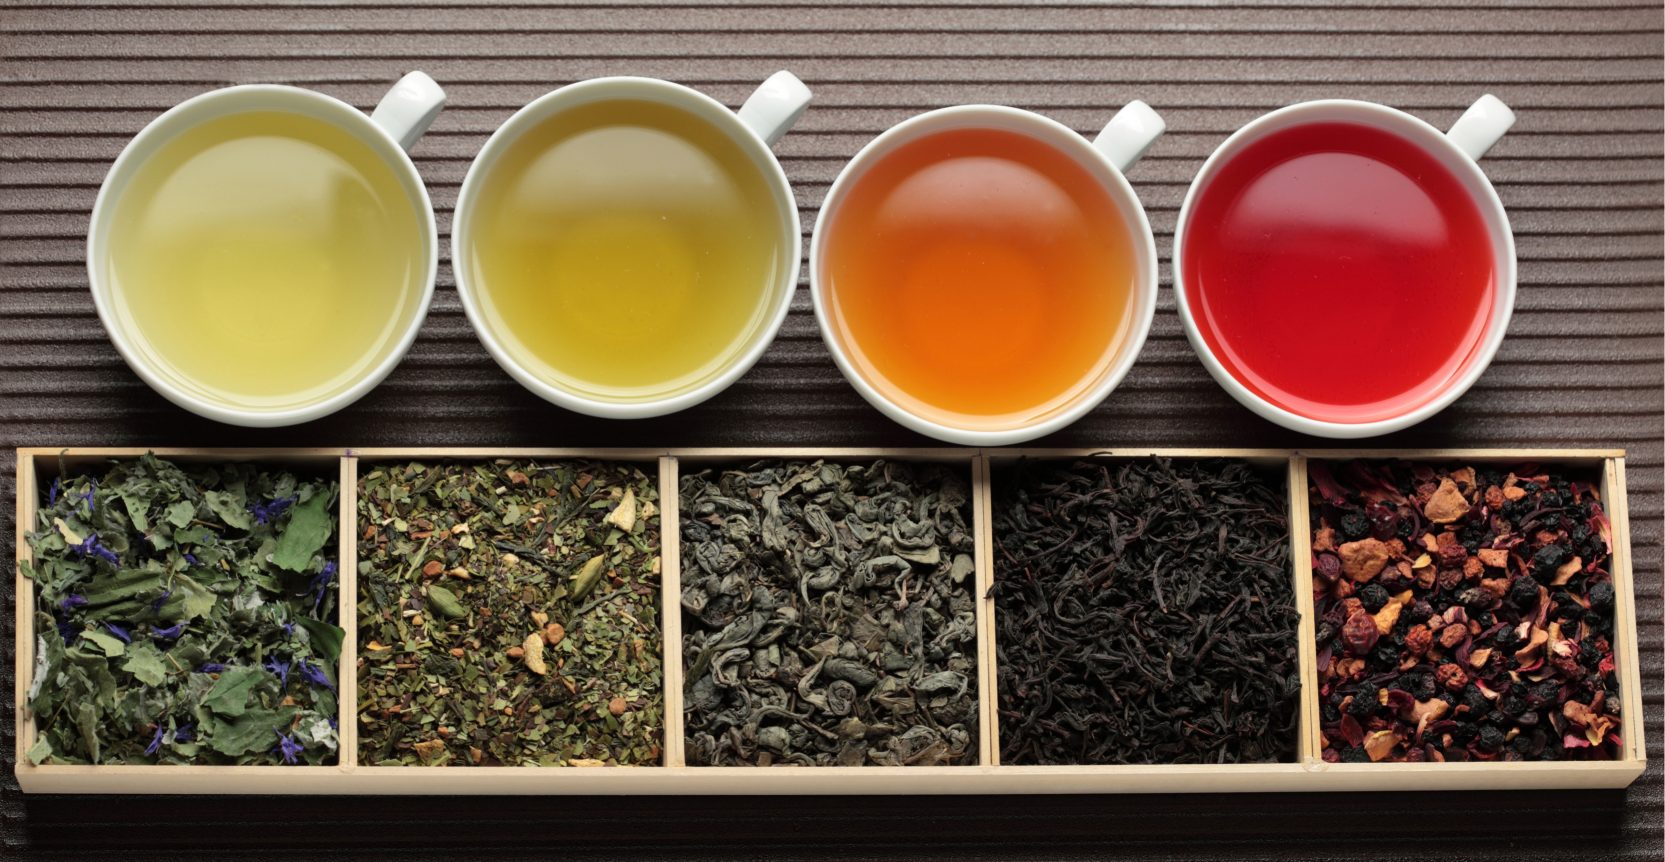 Black , green , fruit tea cups and assortment of dry tea leaves in boxes